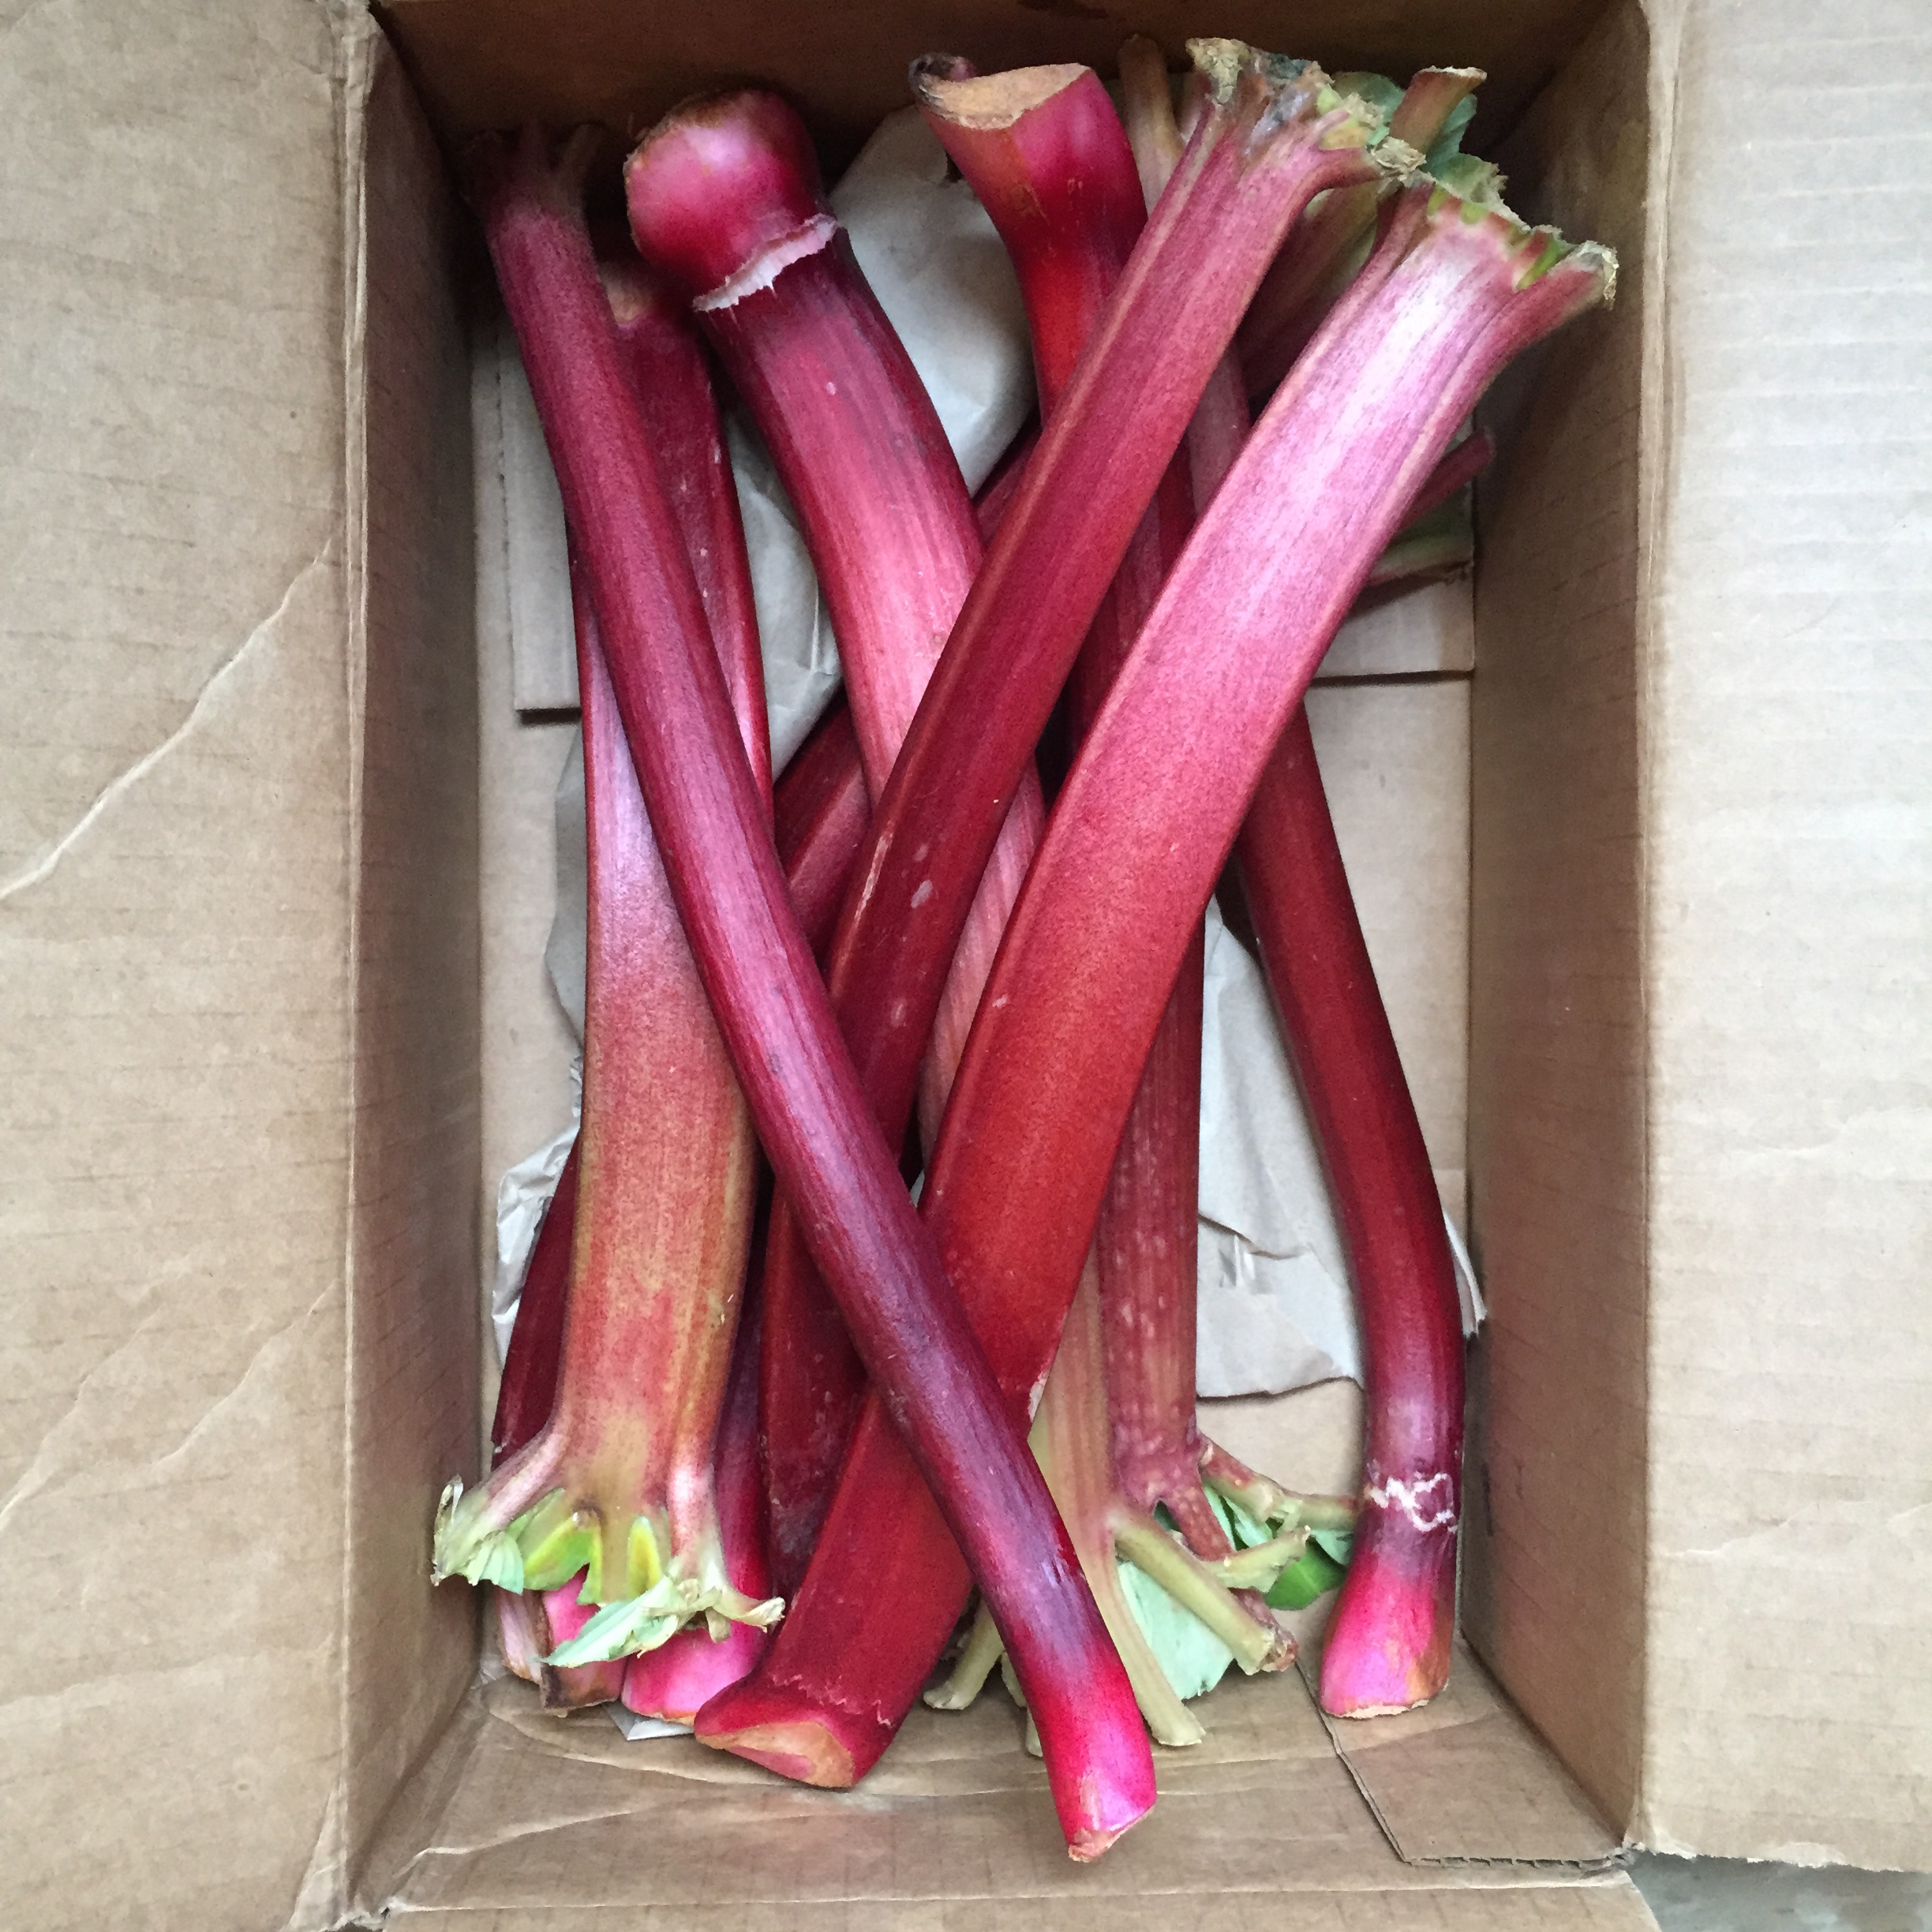 Beautiful rhubarb from  Melissa's Produce!